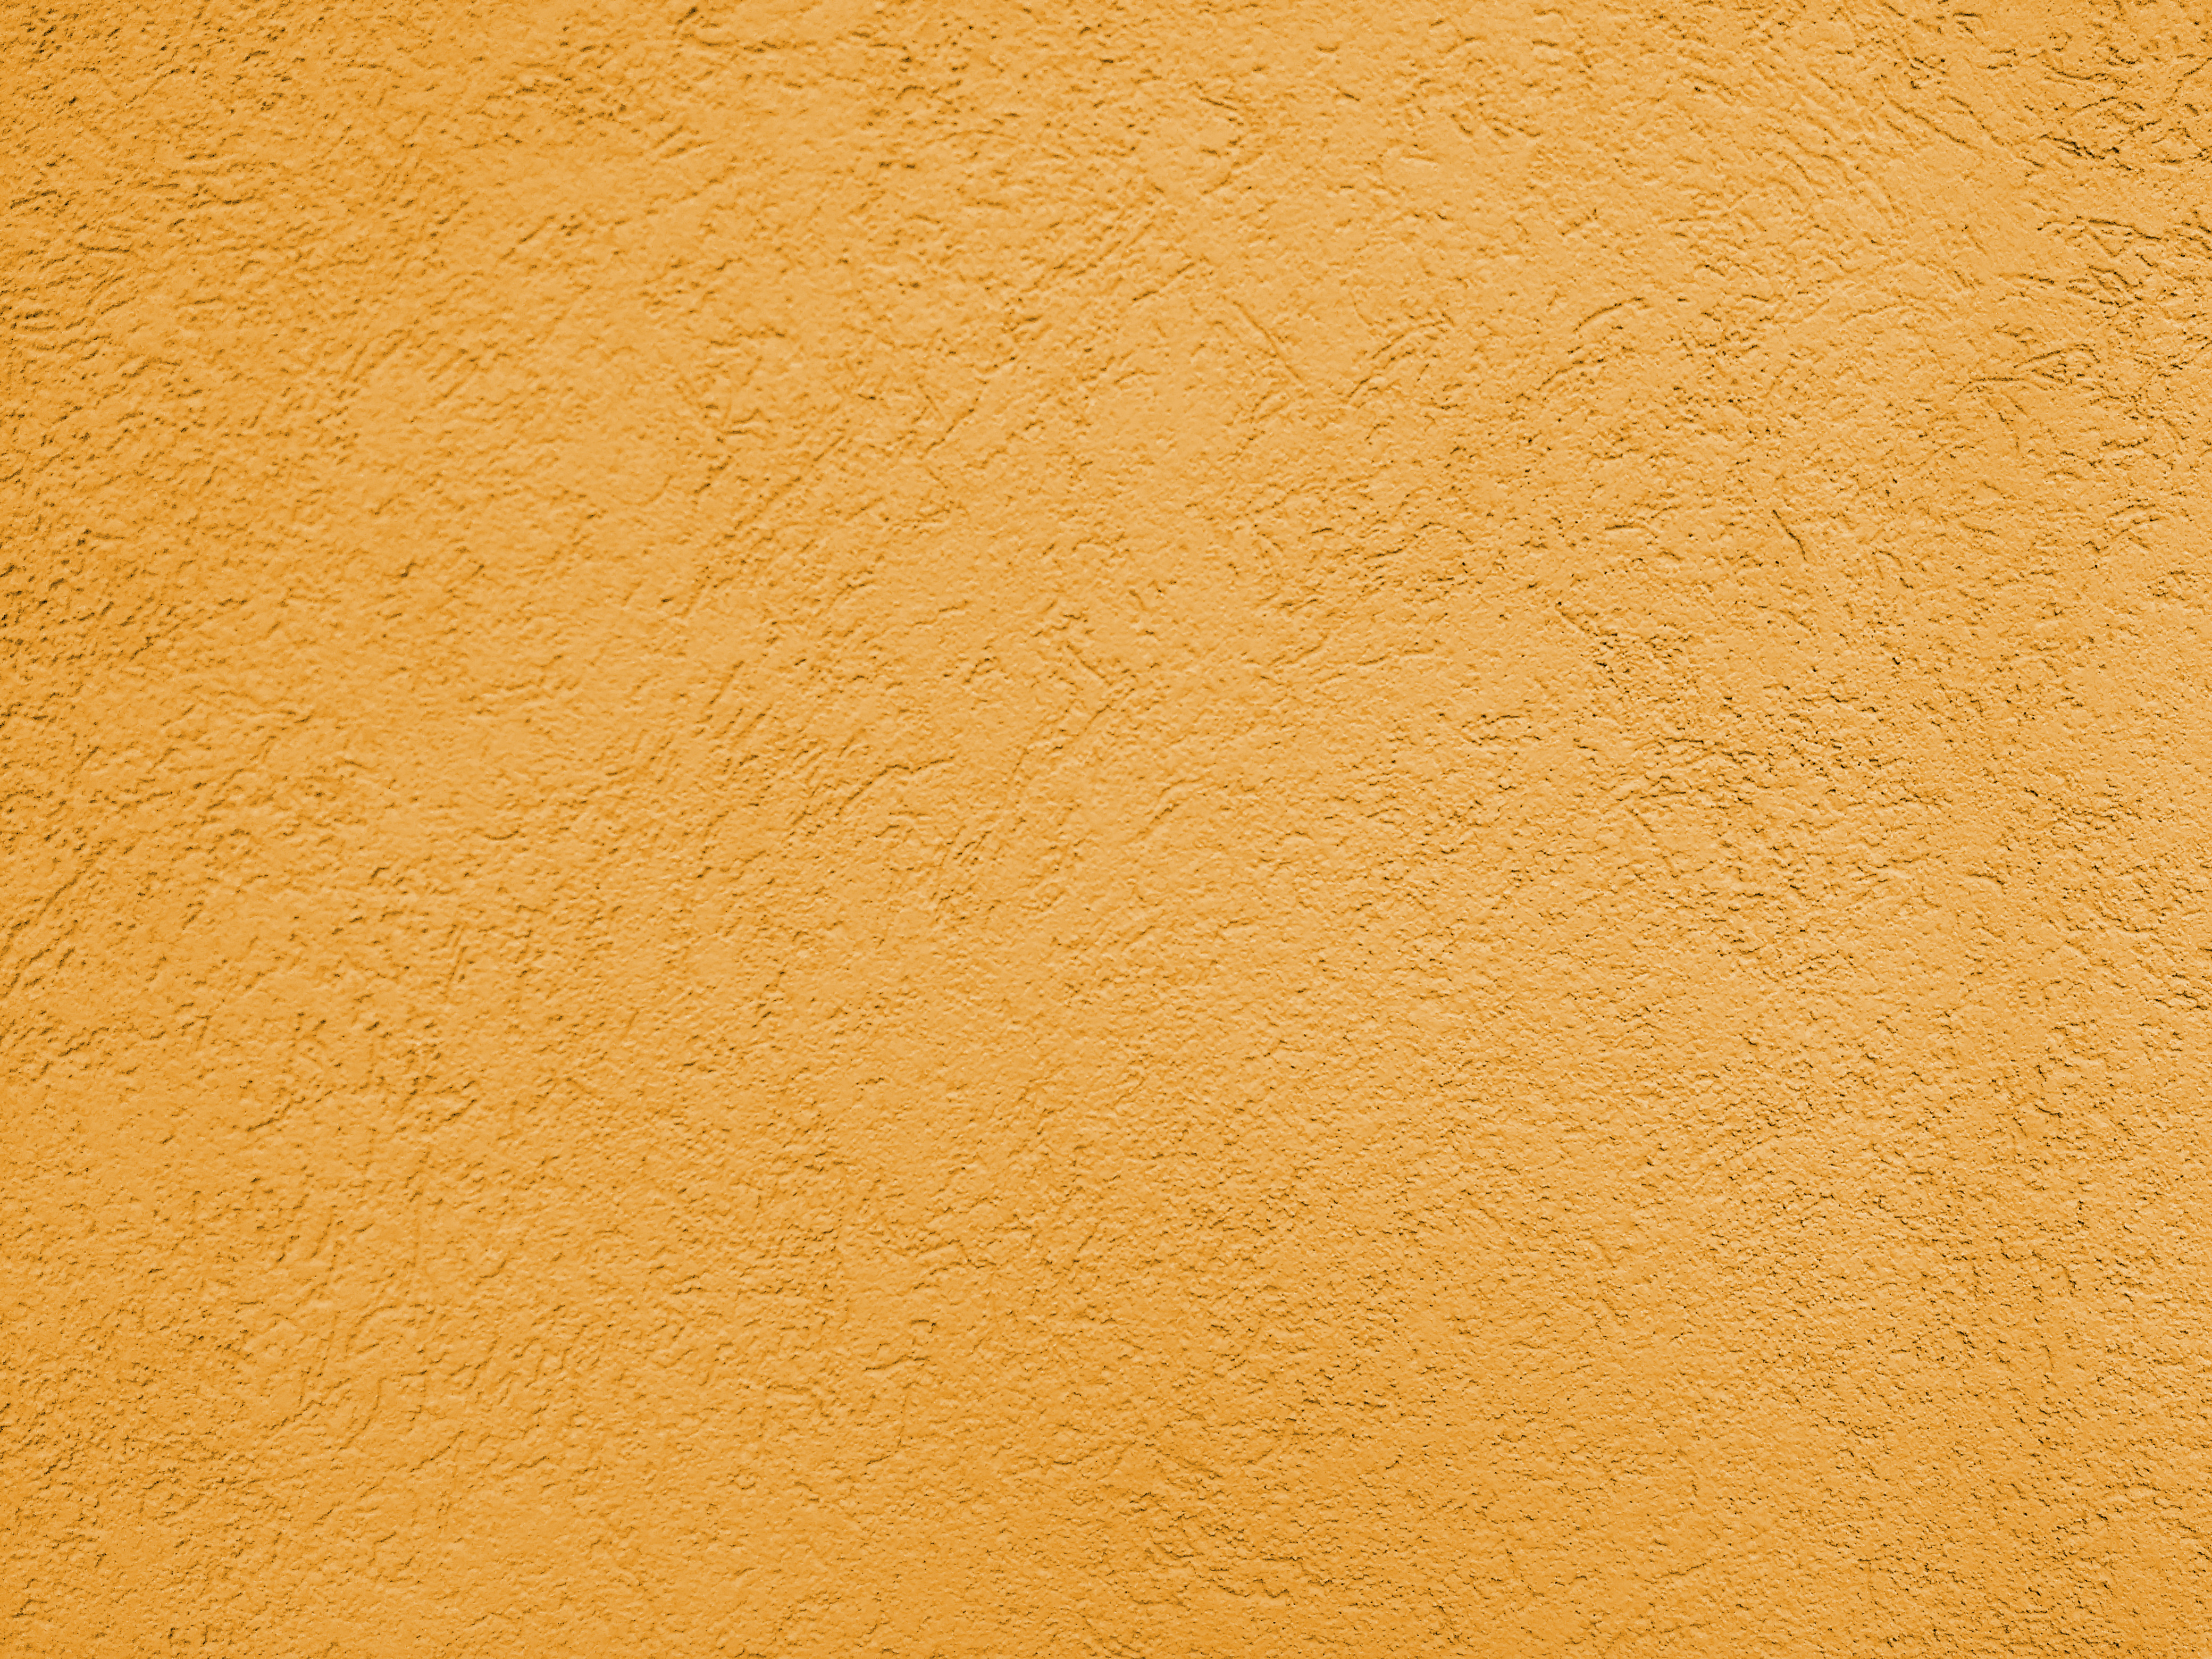 Orange Textured Wall Close Up Picture | Free Photograph | Photos ...